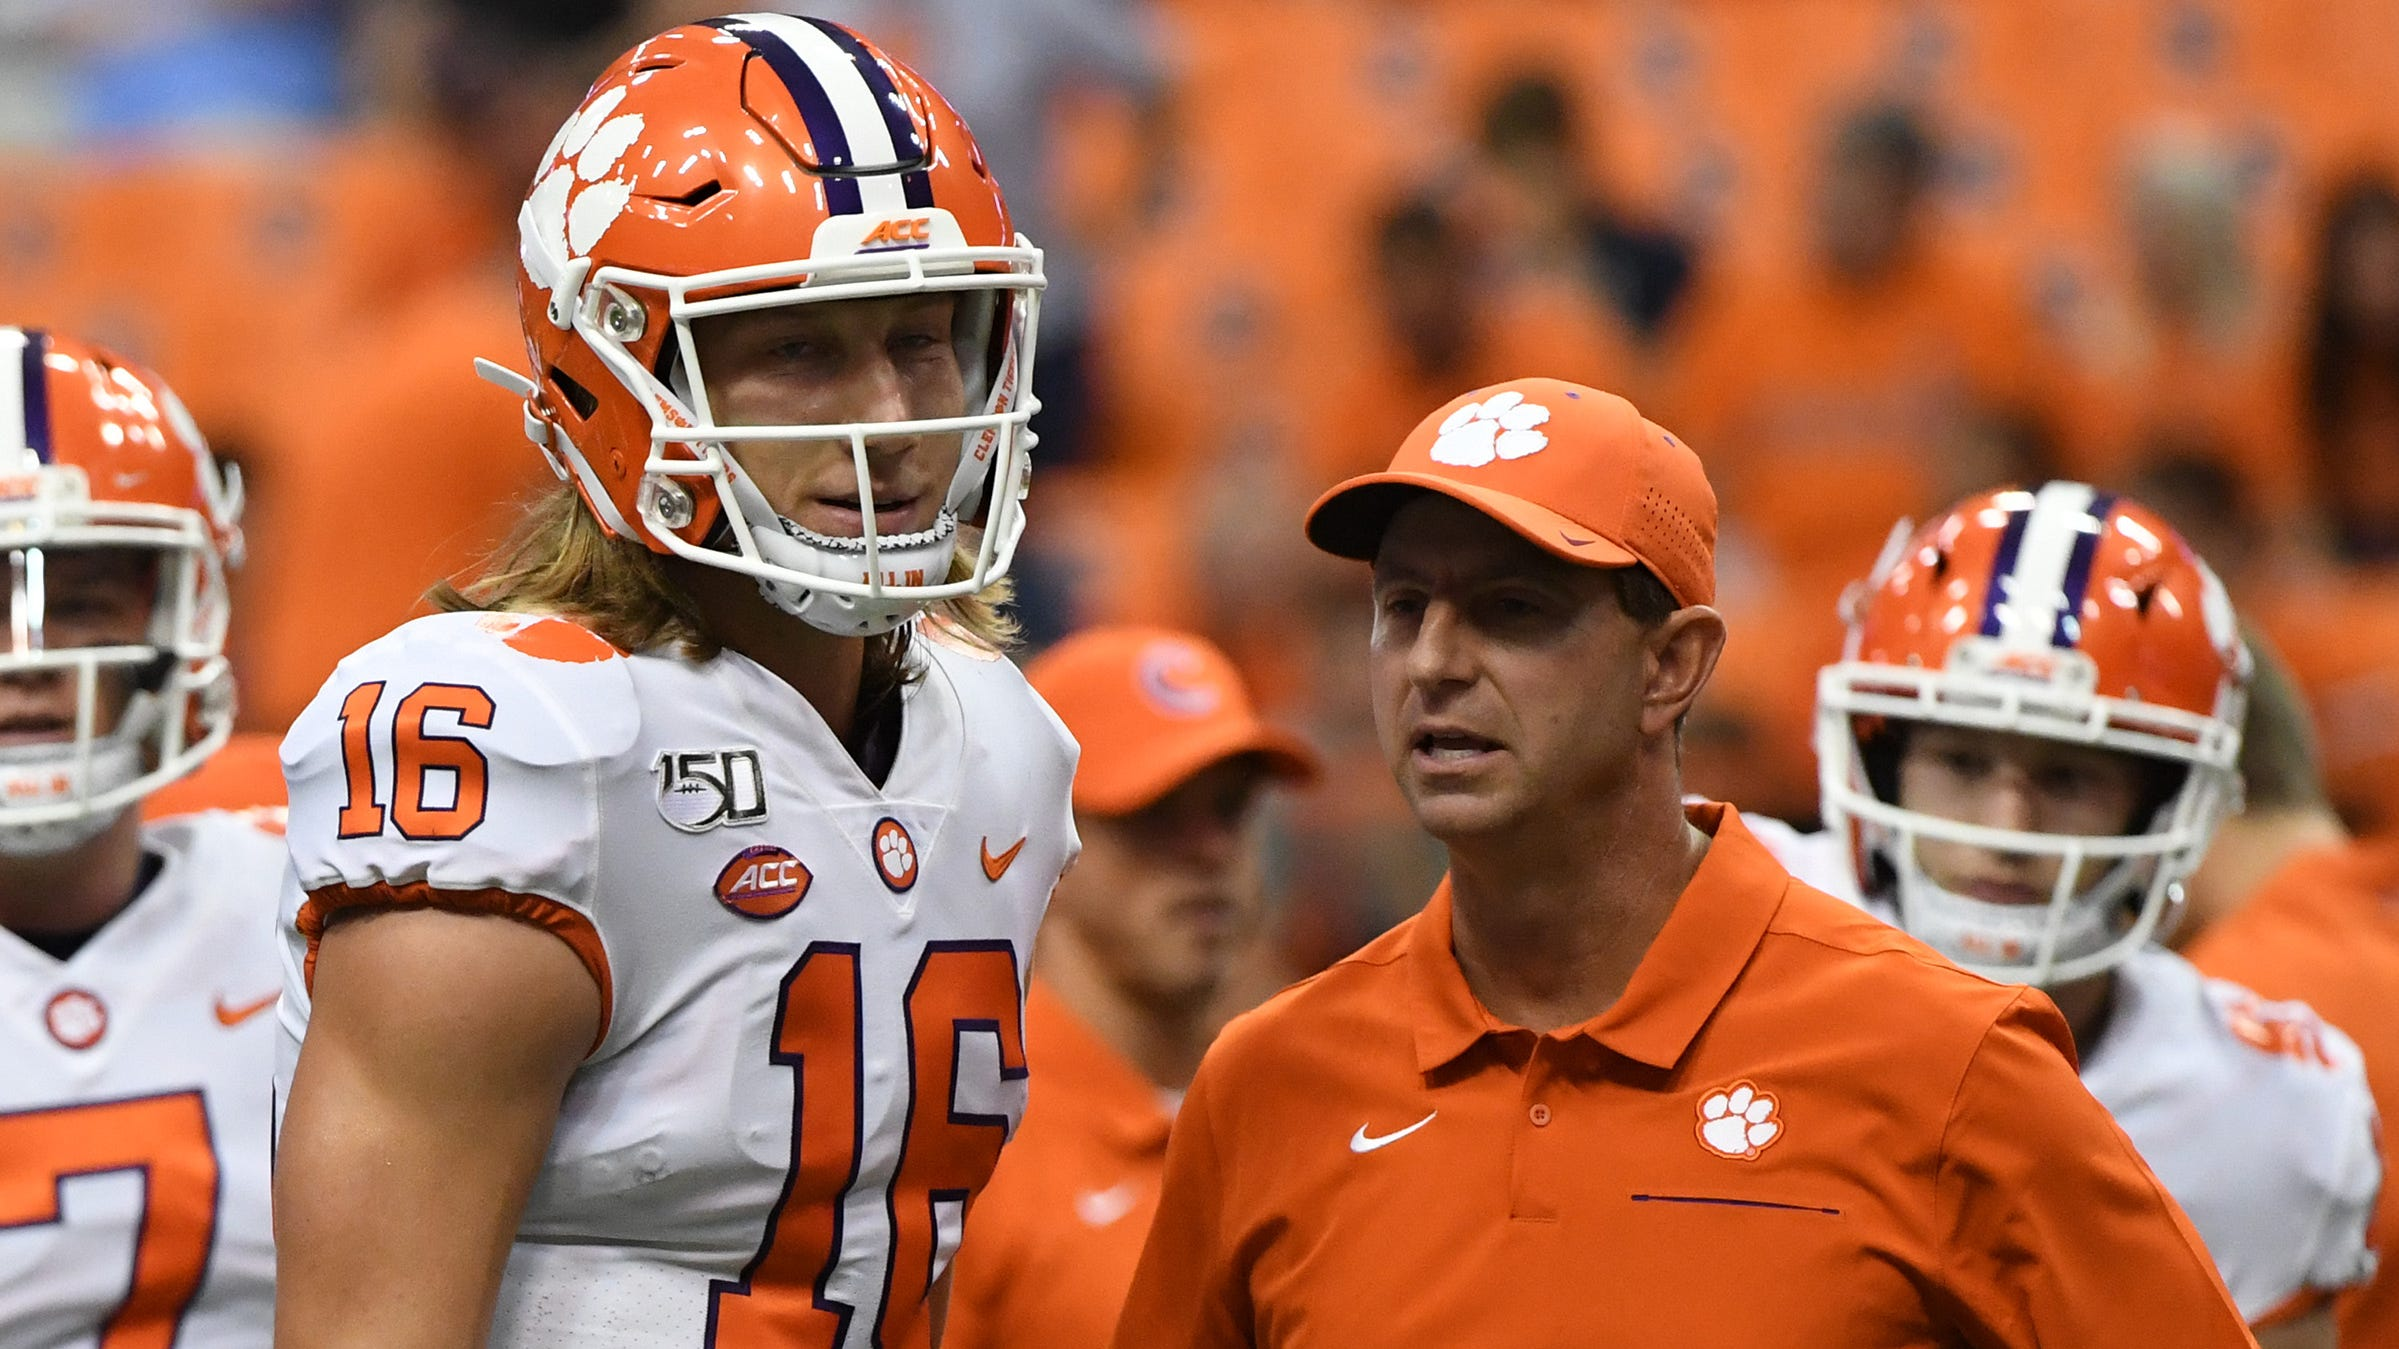 Clemson football coach Dabo Swinney says QB Trevor Lawrence isn't hurt